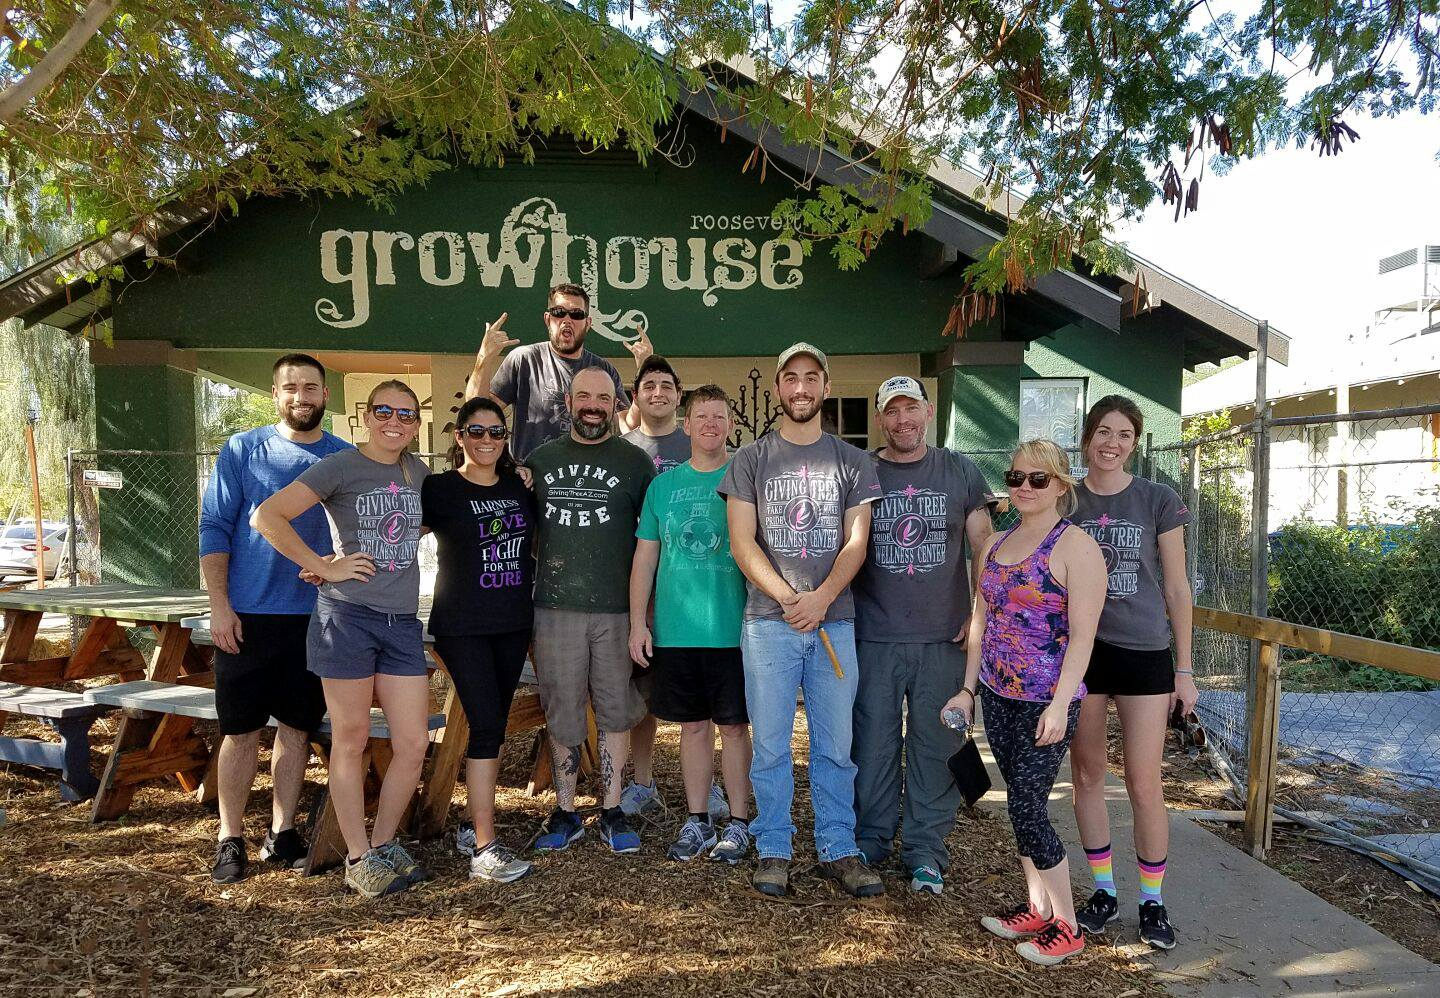 ROOSEVELT Growhouse - 2016